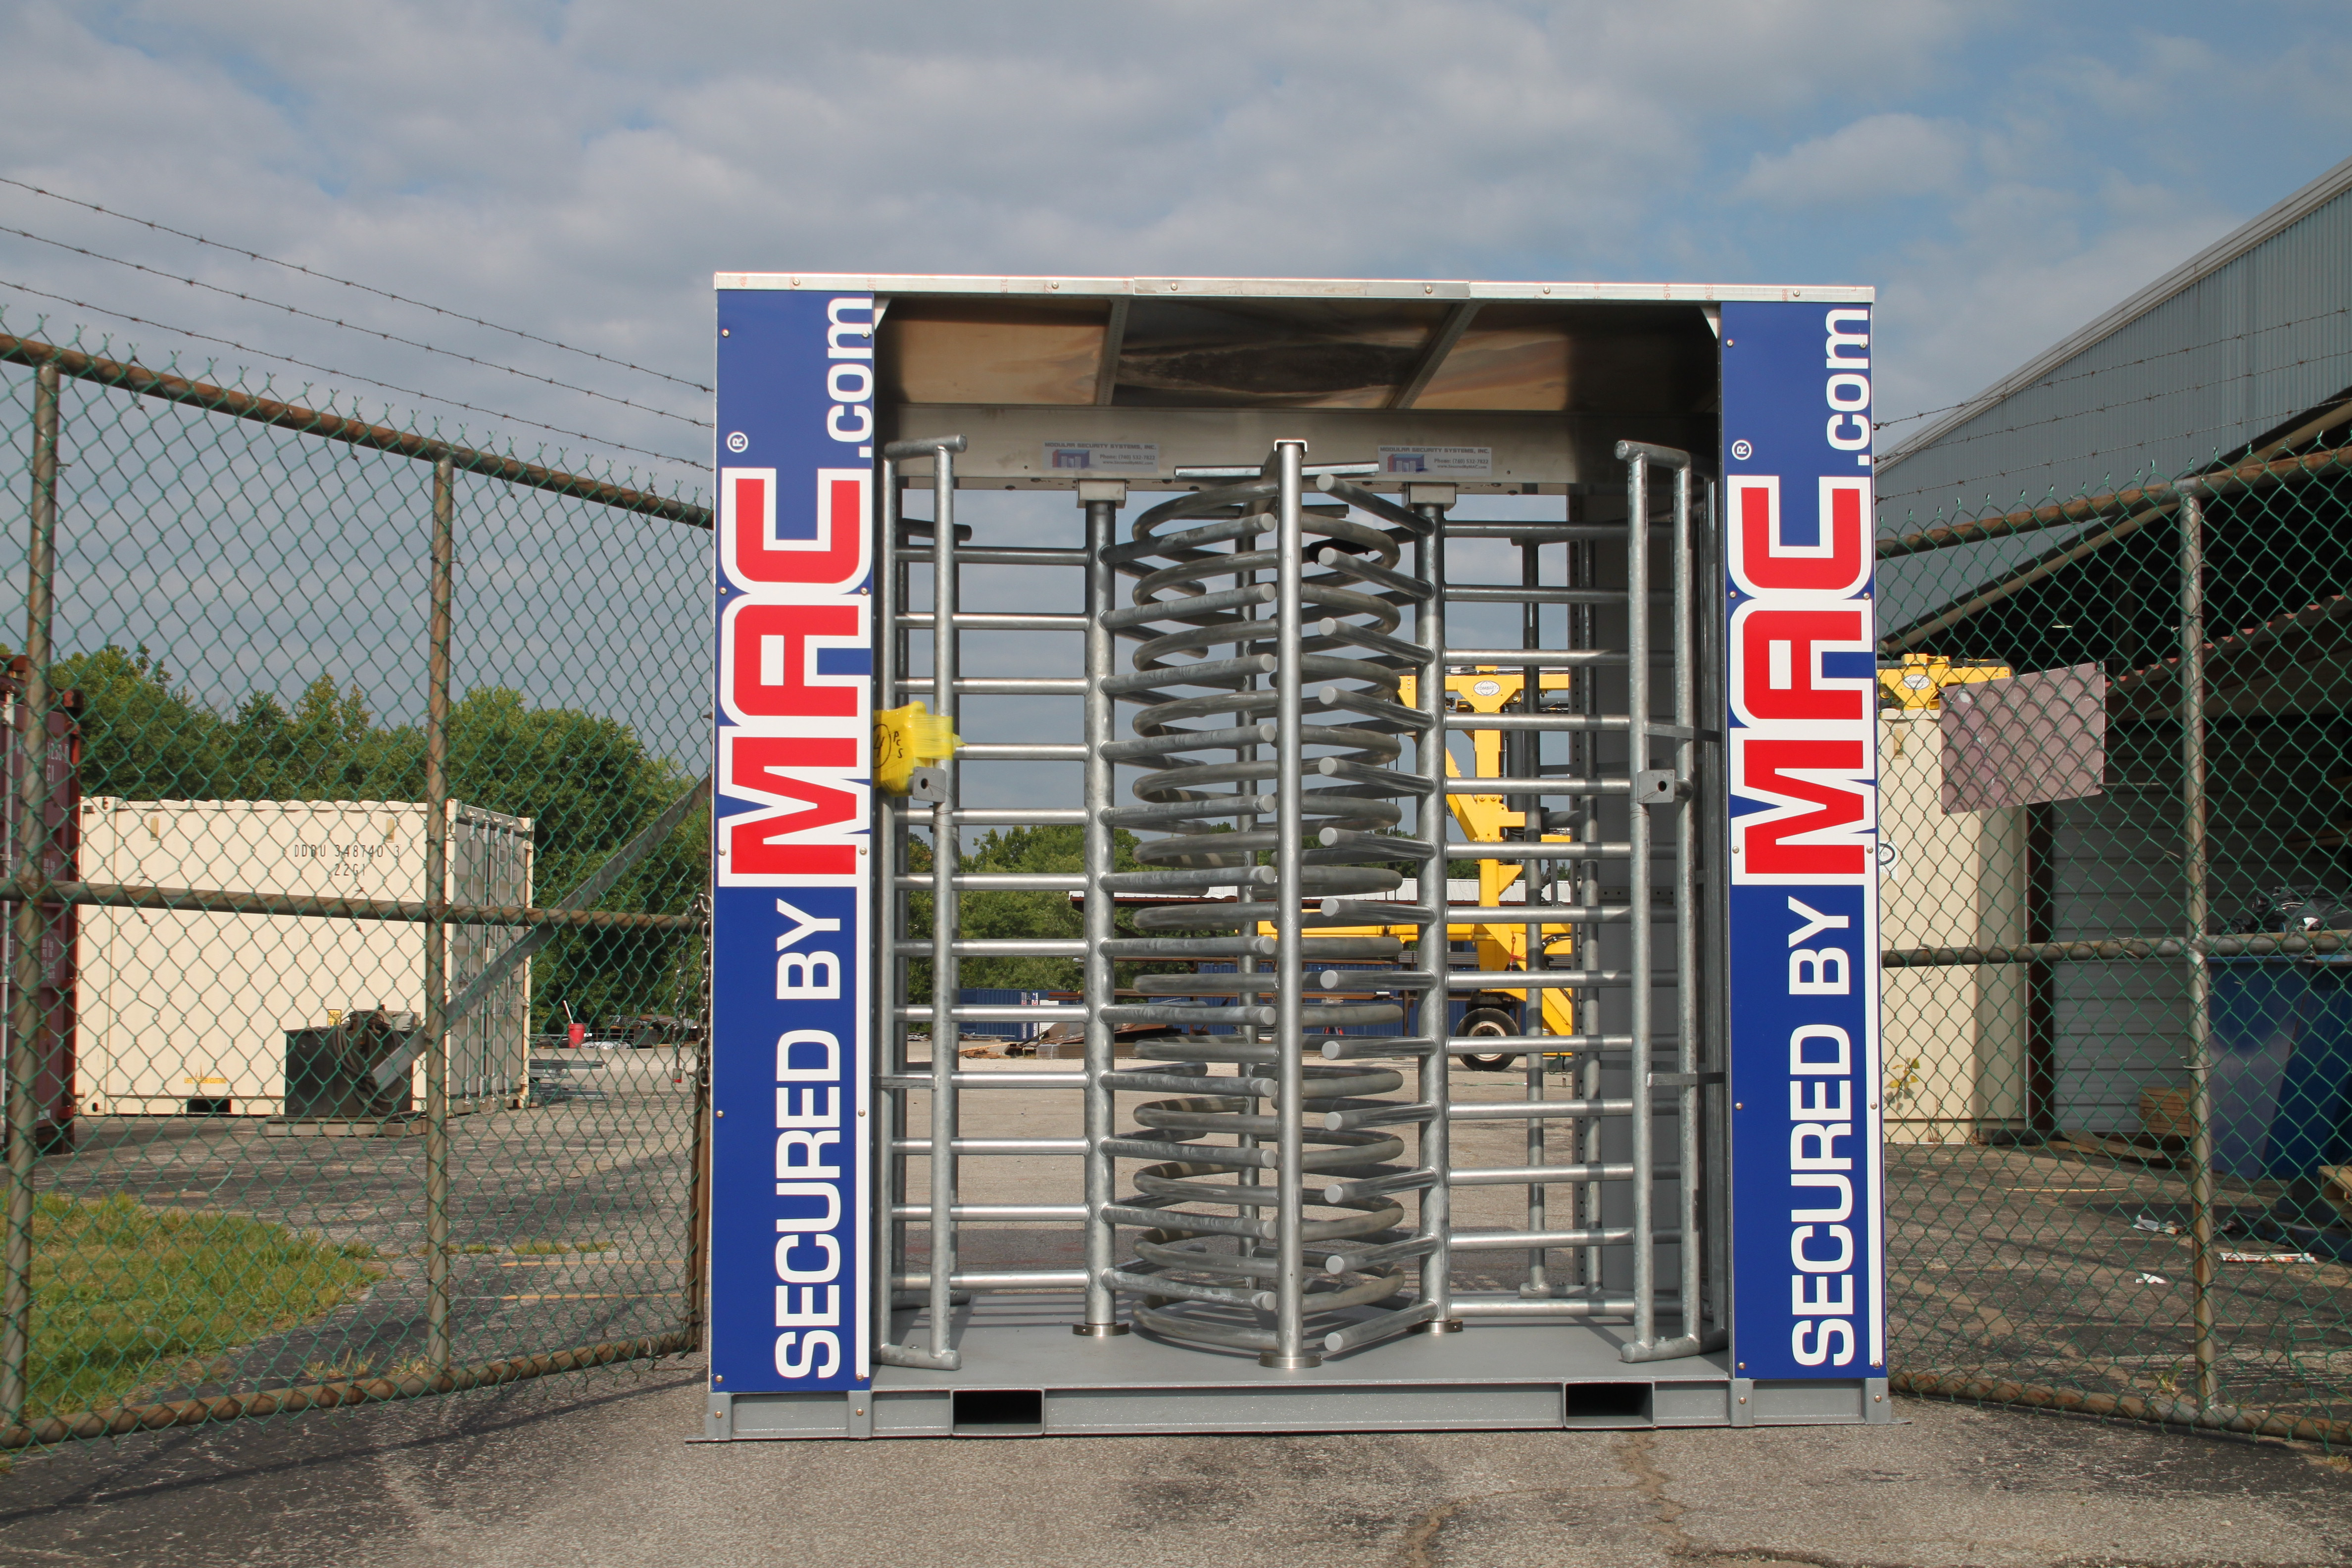 Modular Access Control, MSSI, Turnstile, Turnstiles, patented MAC Portal, Modular Security Systems Inc, MAC-Lite, cost effective turnstile, cost effective turnstiles